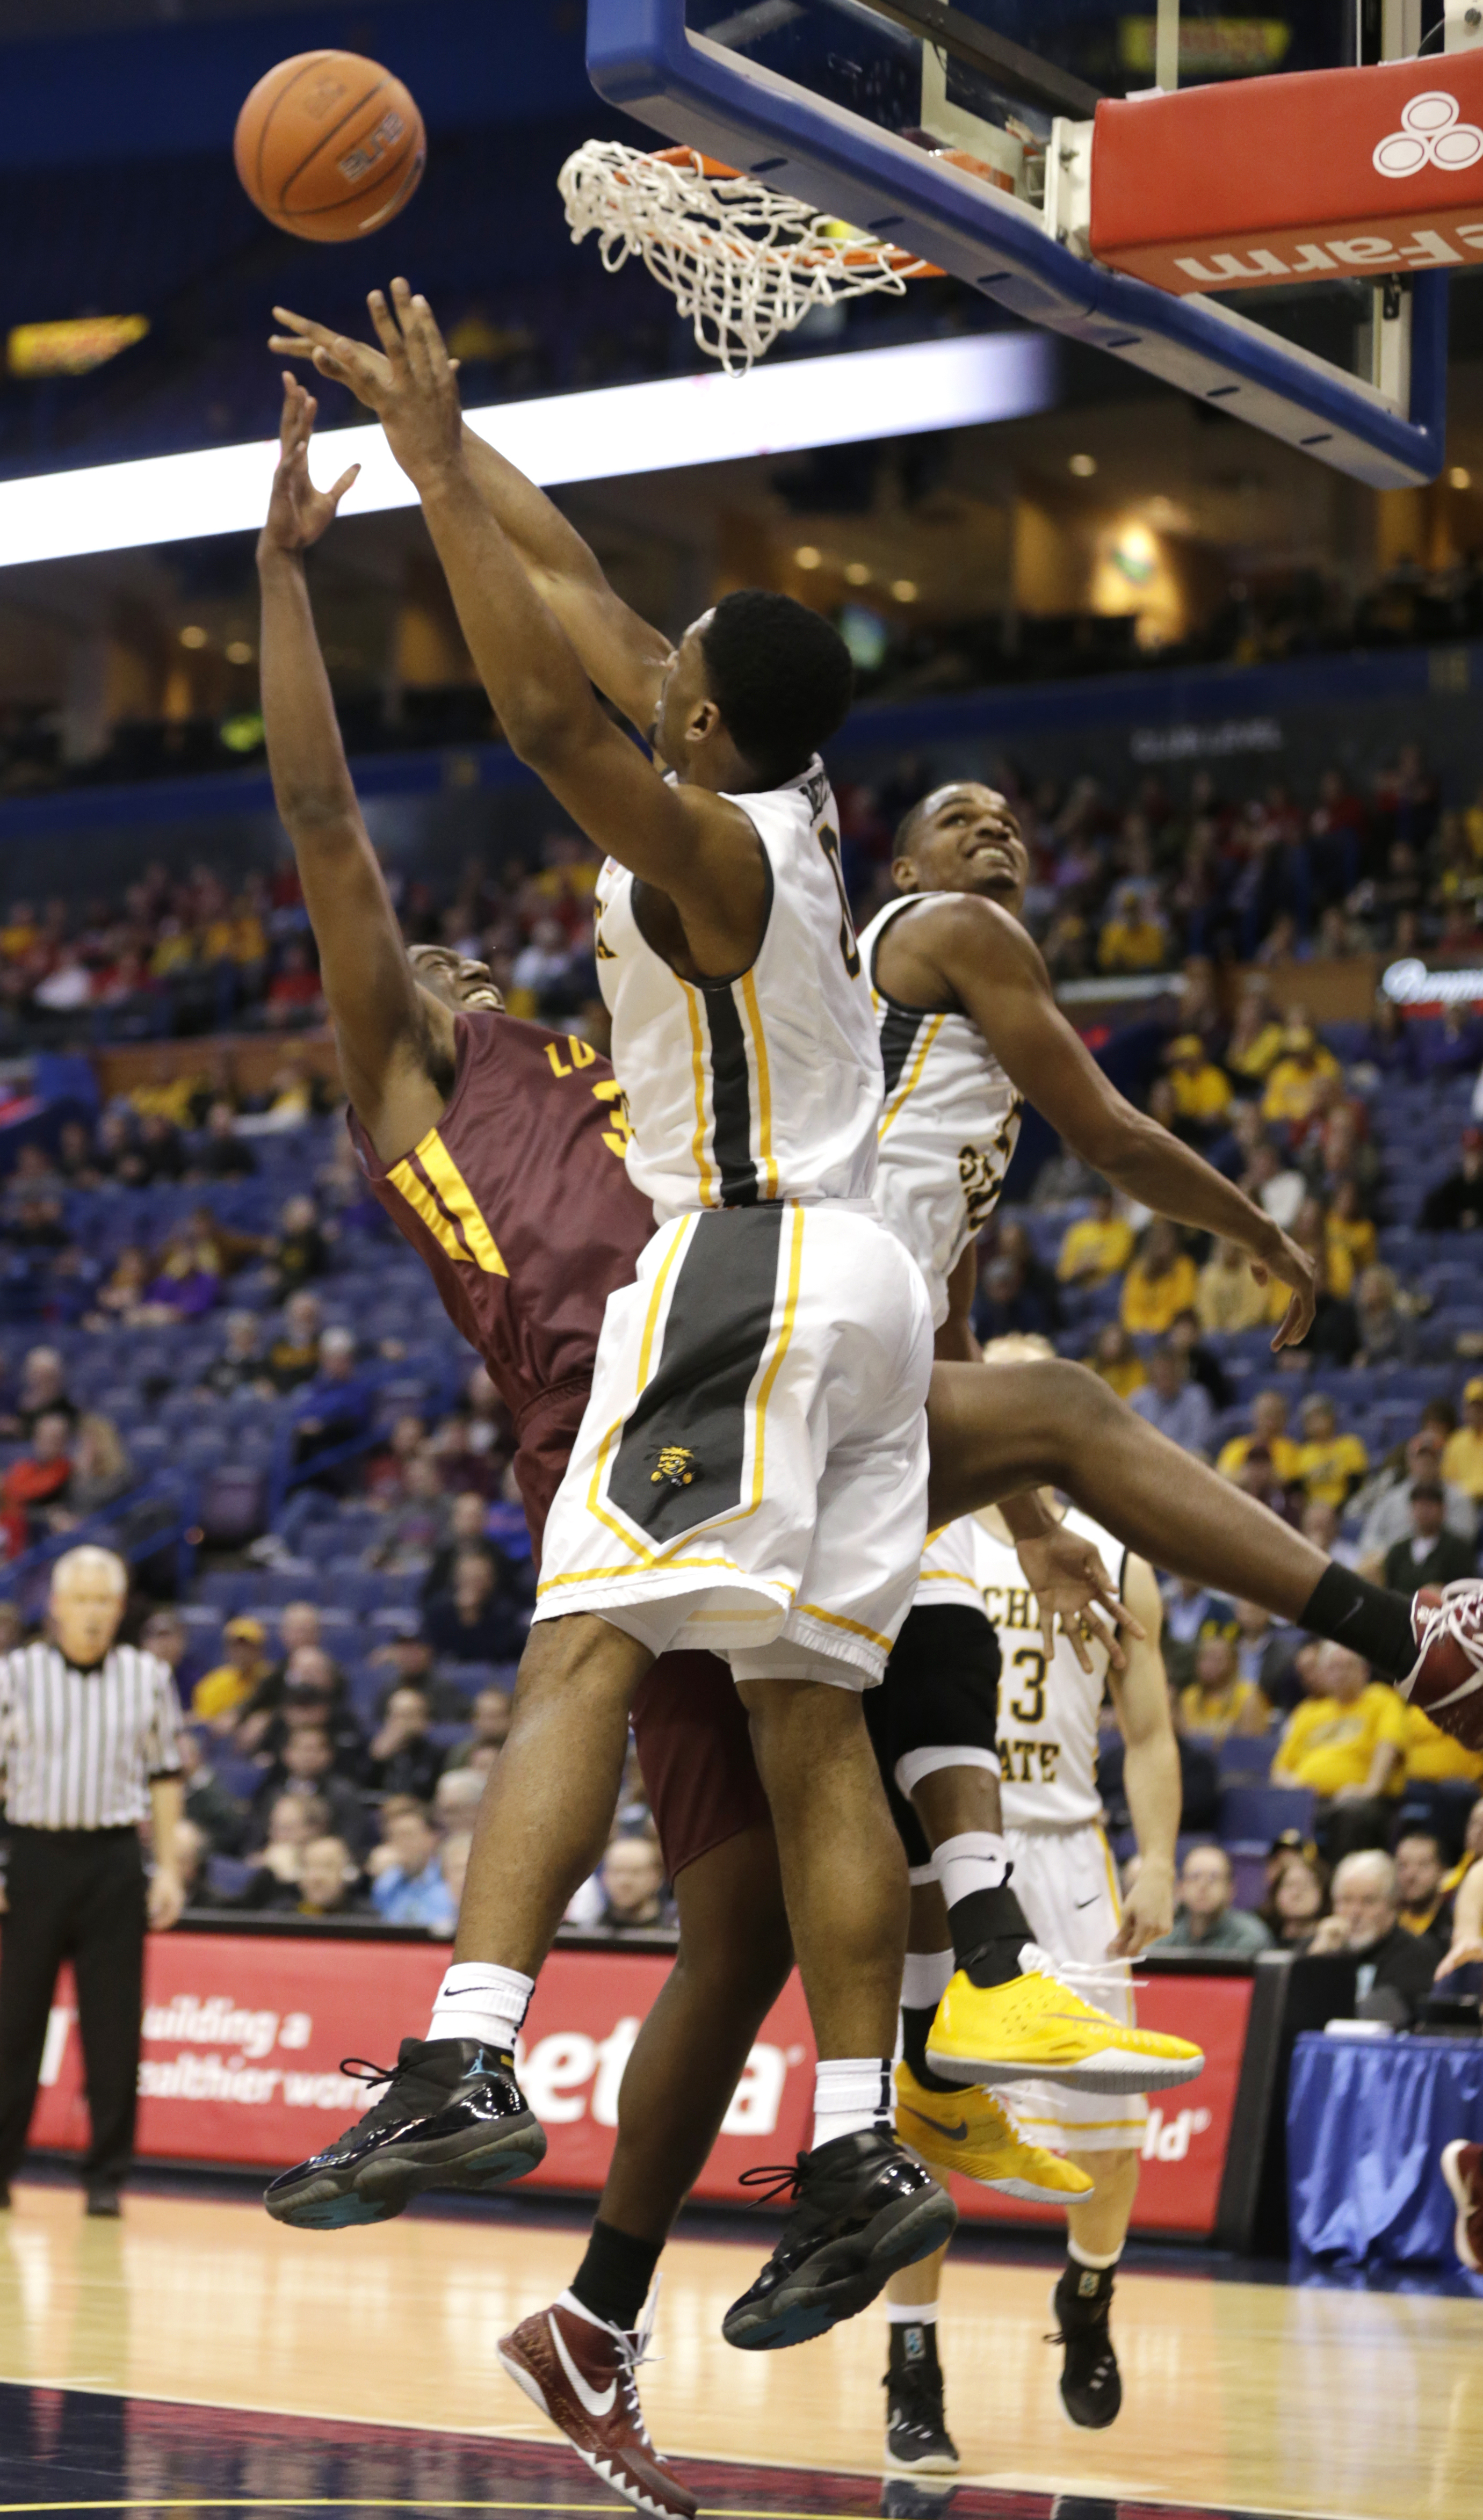 Wichita State's Rashard Kelly, center, slaps away a shot from Loyola's Milton Doyle, left, as Wichita State's Zach Brown defends during the first half of an NCAA college basketball game in the quarterfinals of the Missouri Valley Conference tournament, Fr